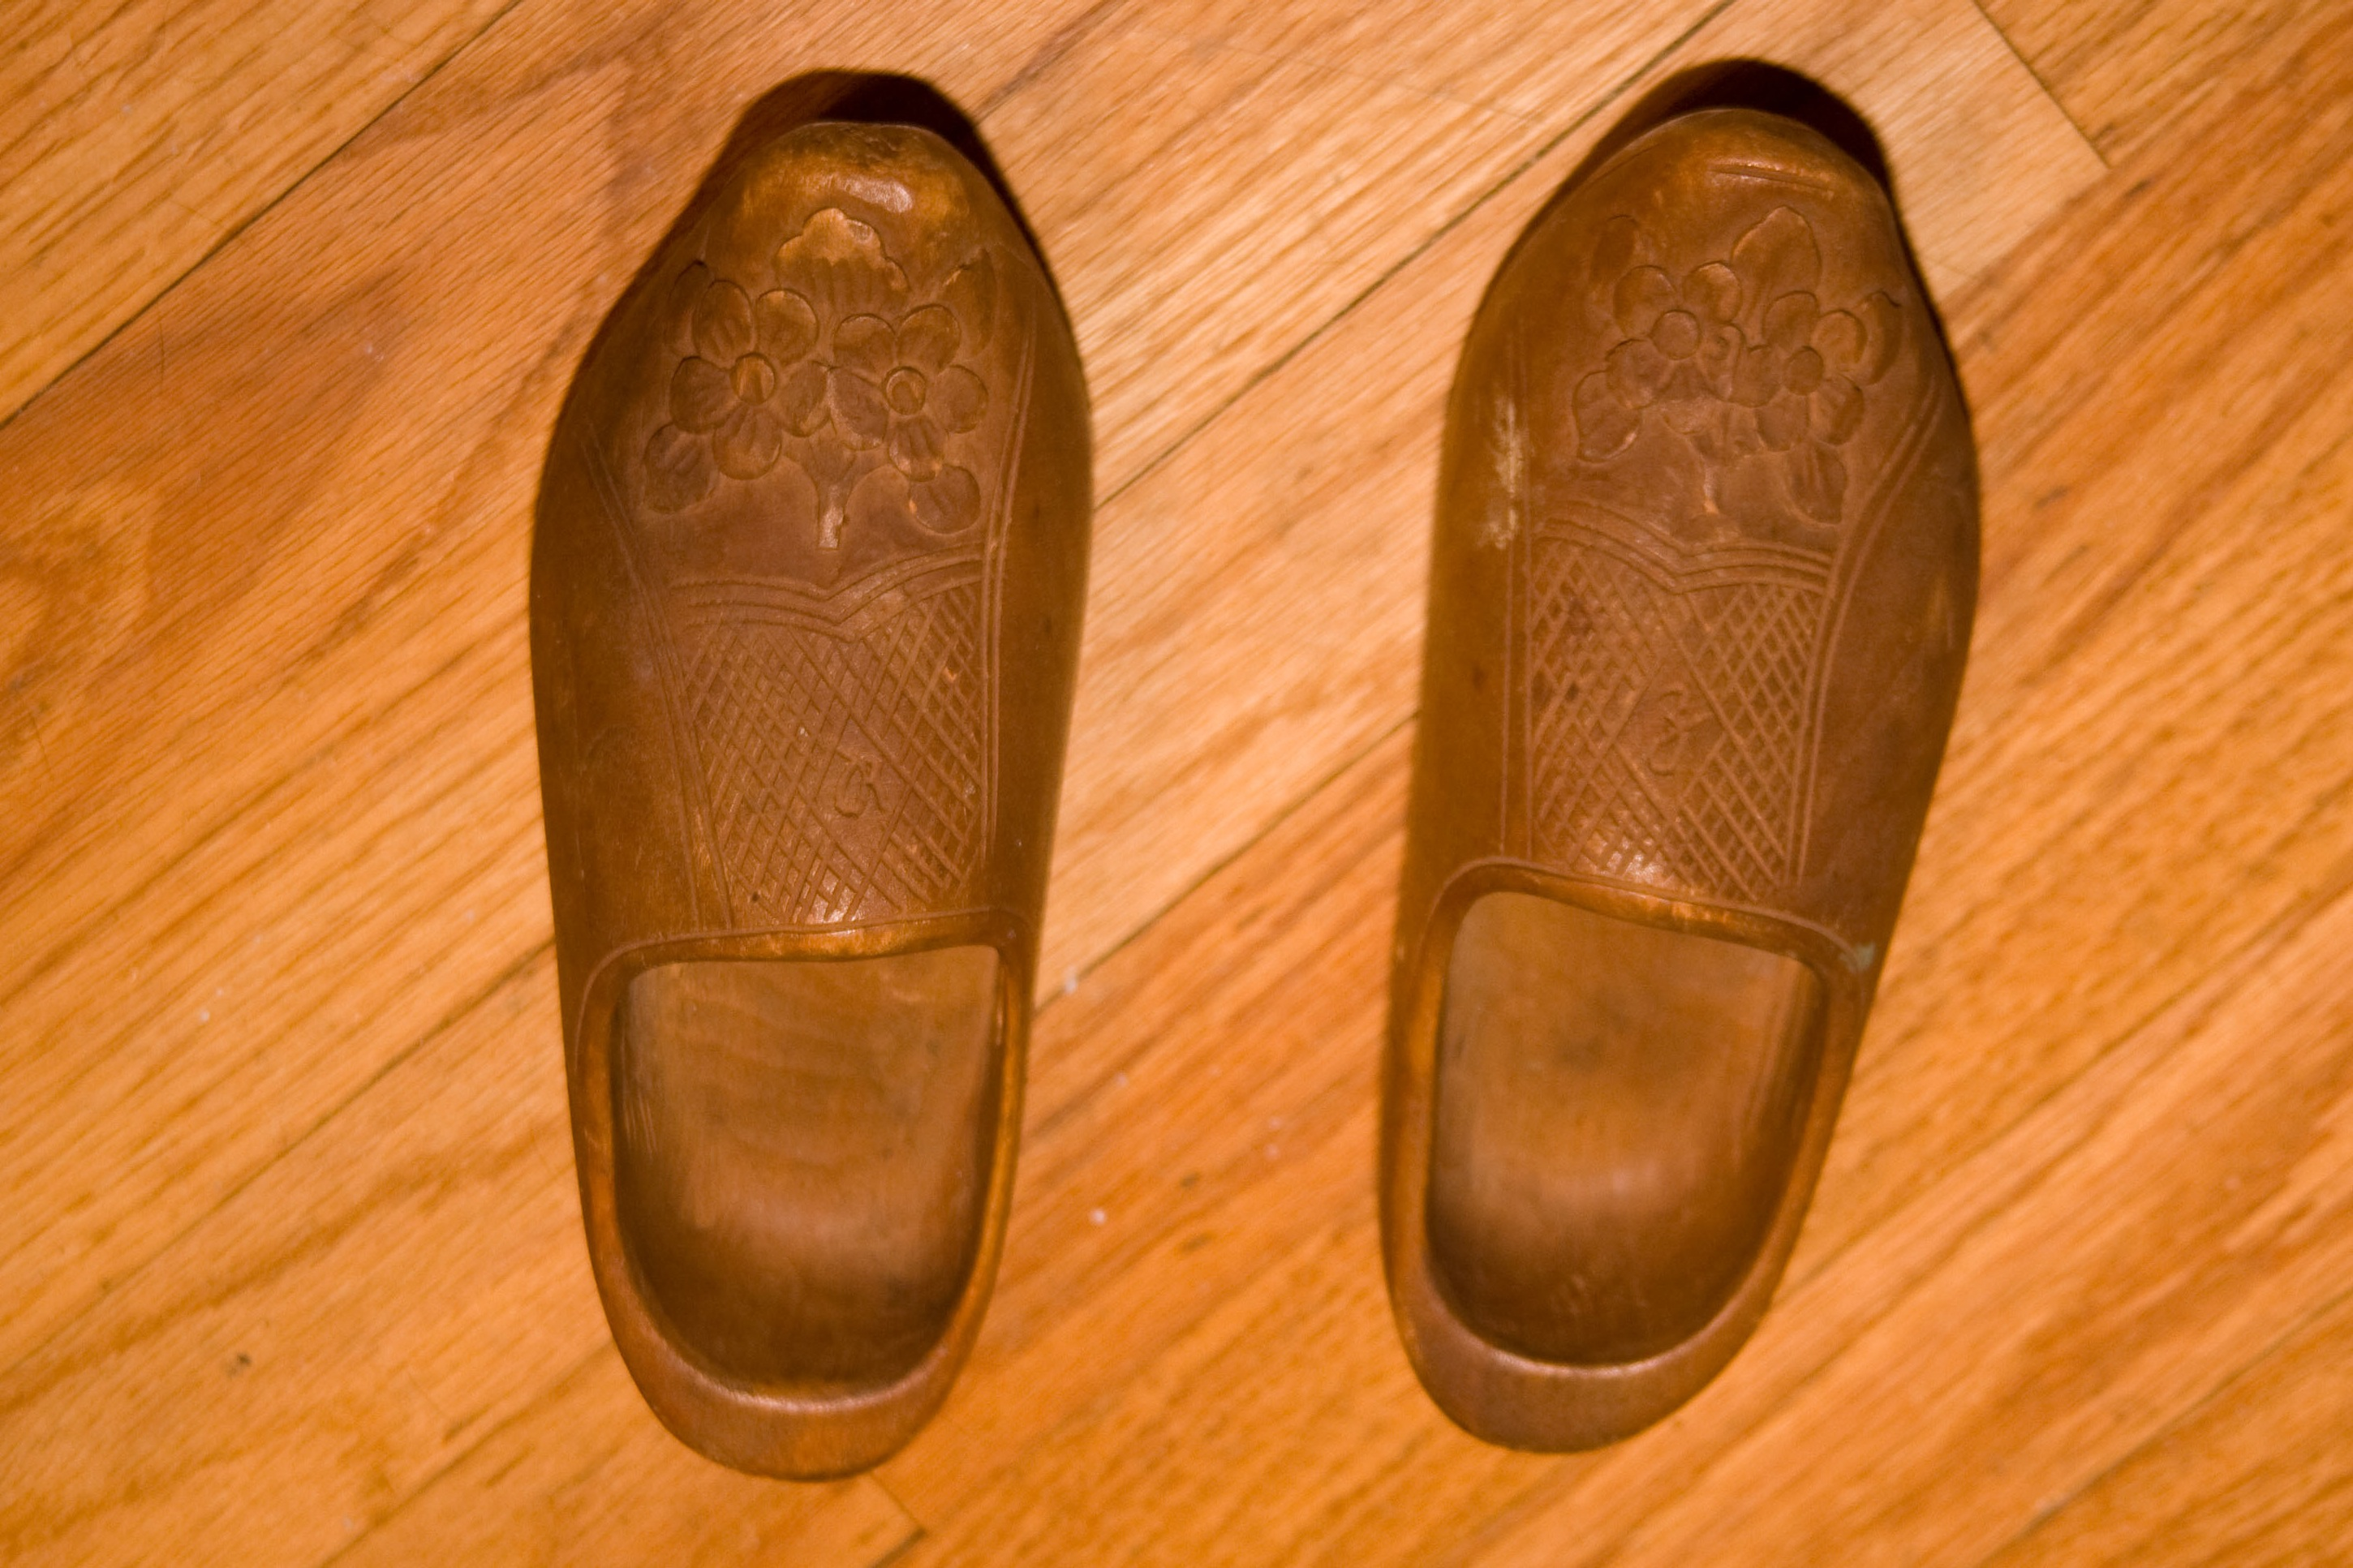 Carl Zimmerman carved these shoes for his granddaughter, Rita.